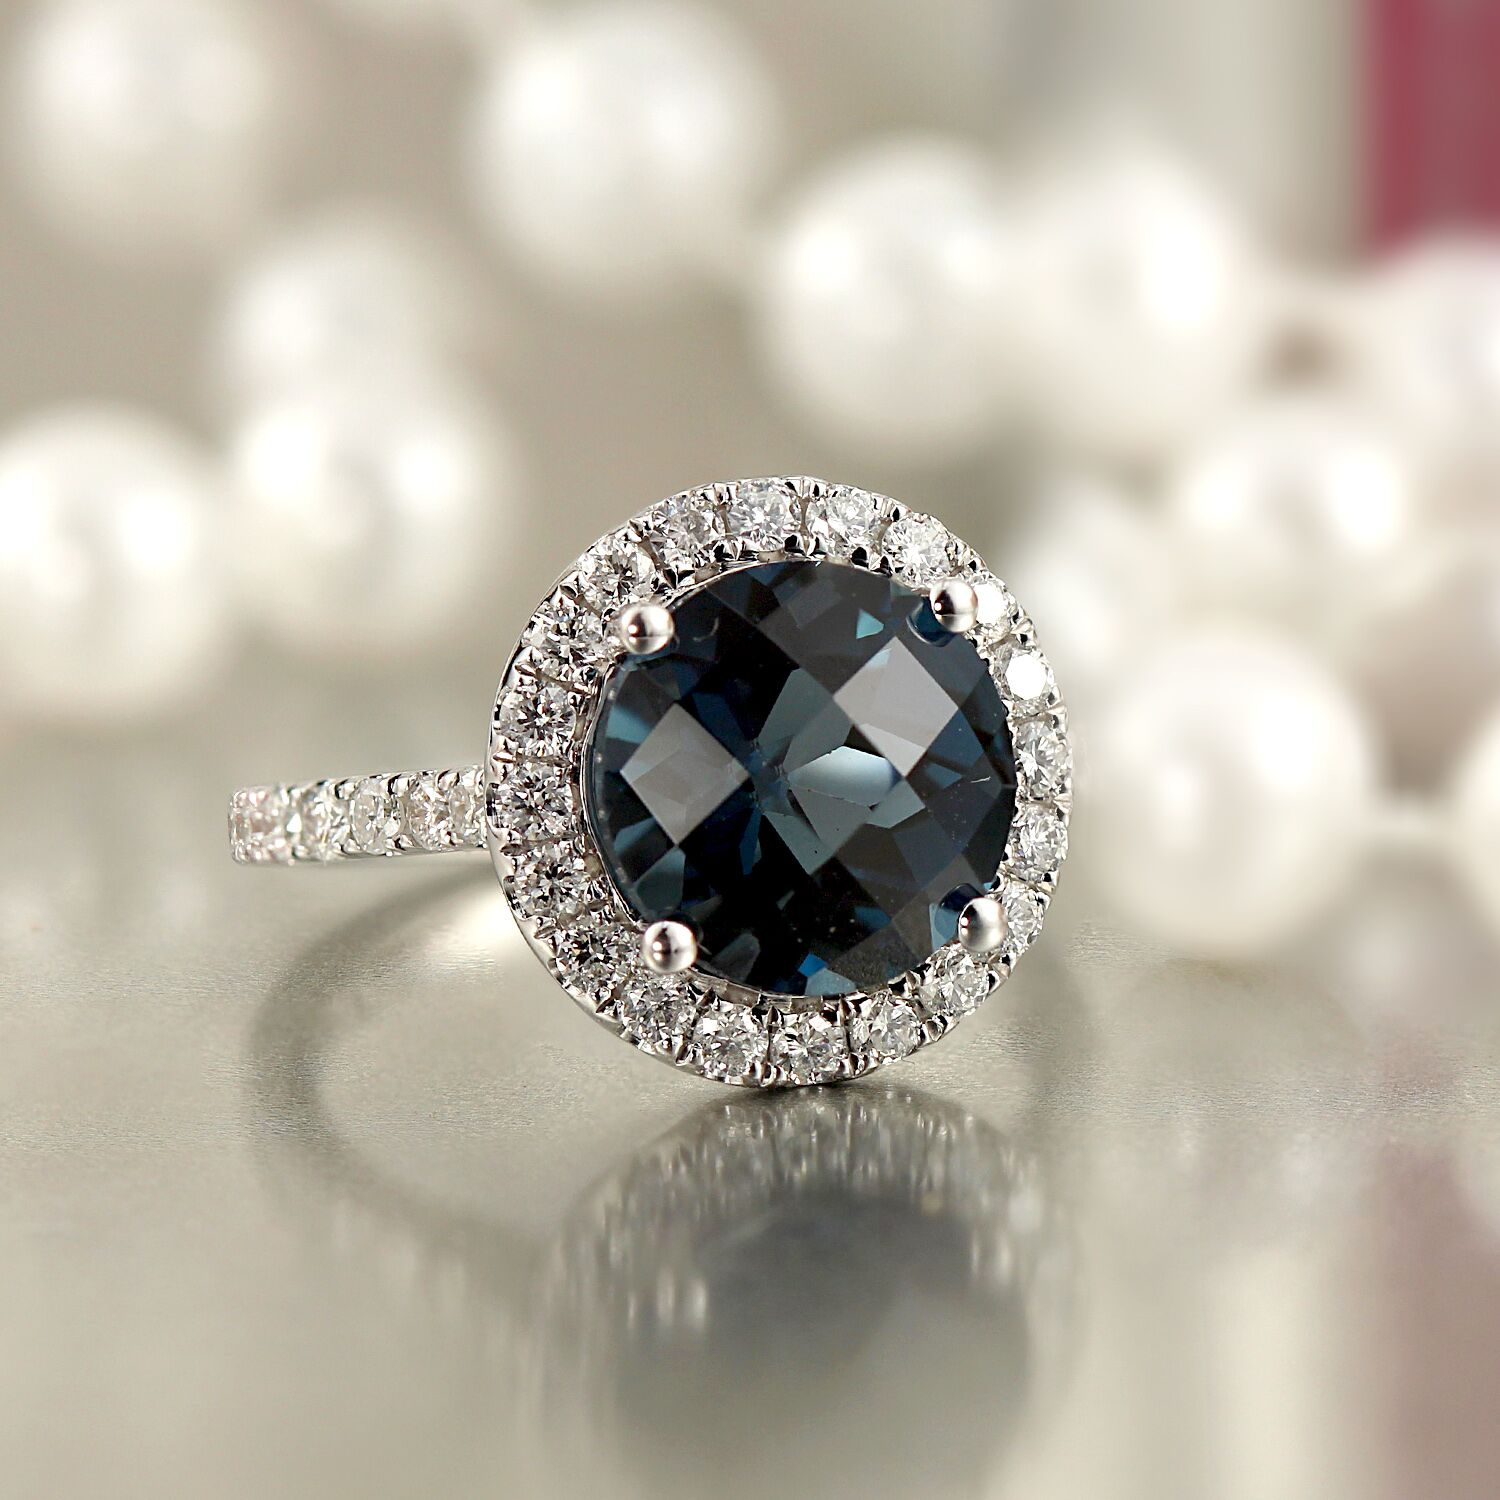 Classic Blue Jewelry: 2020 Pantone Color of the Year